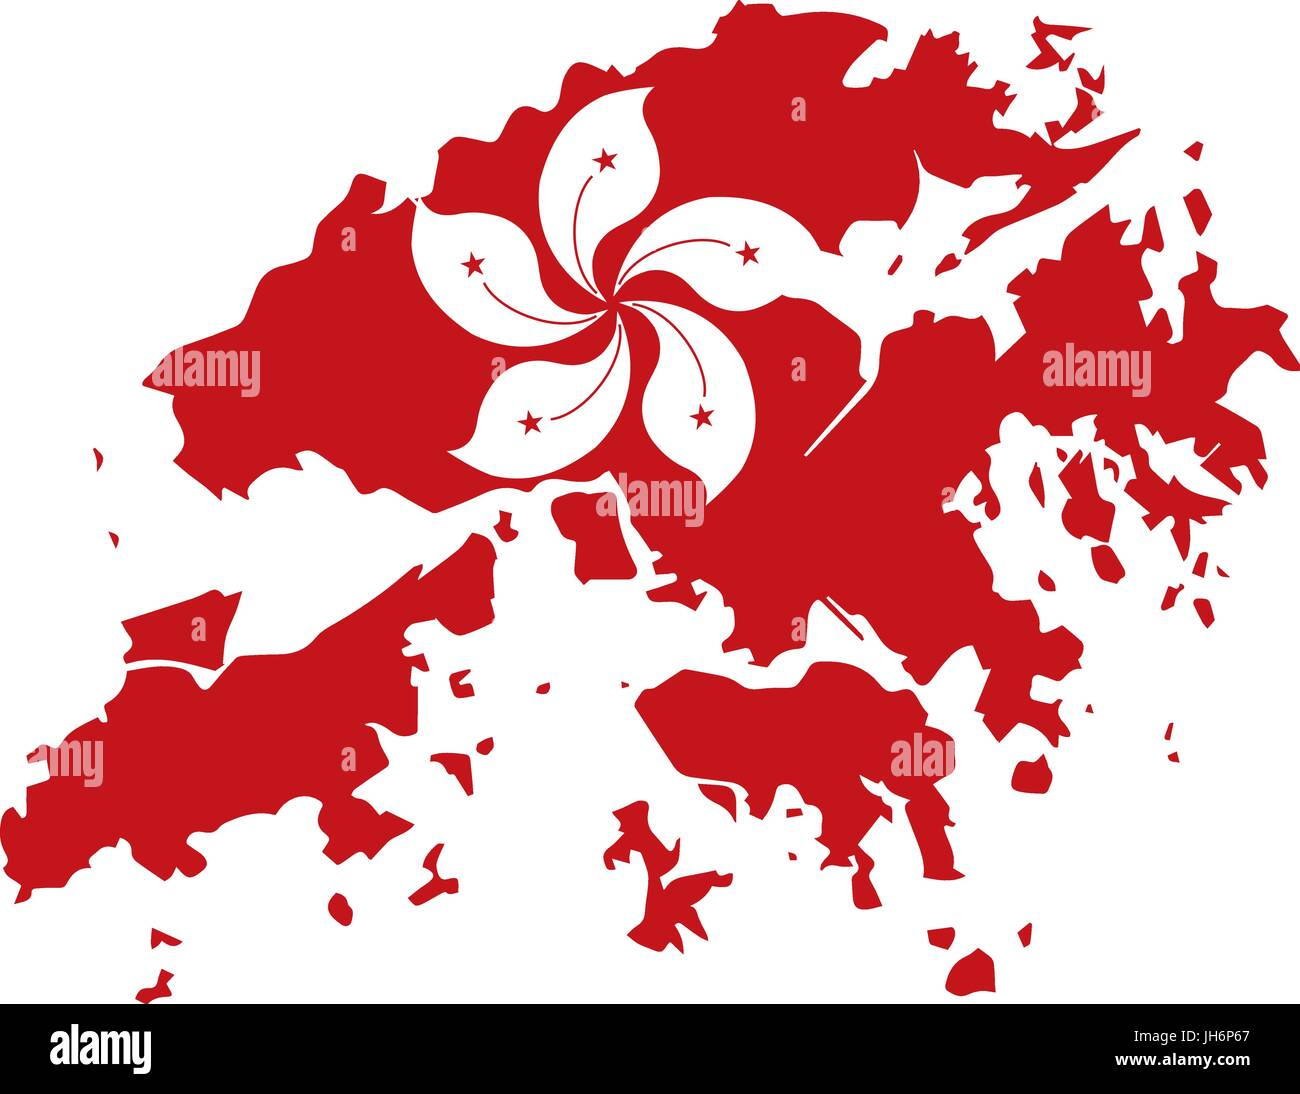 Hong Kong Flag in Red Map Outline Silhouette Illustration - Stock Vector